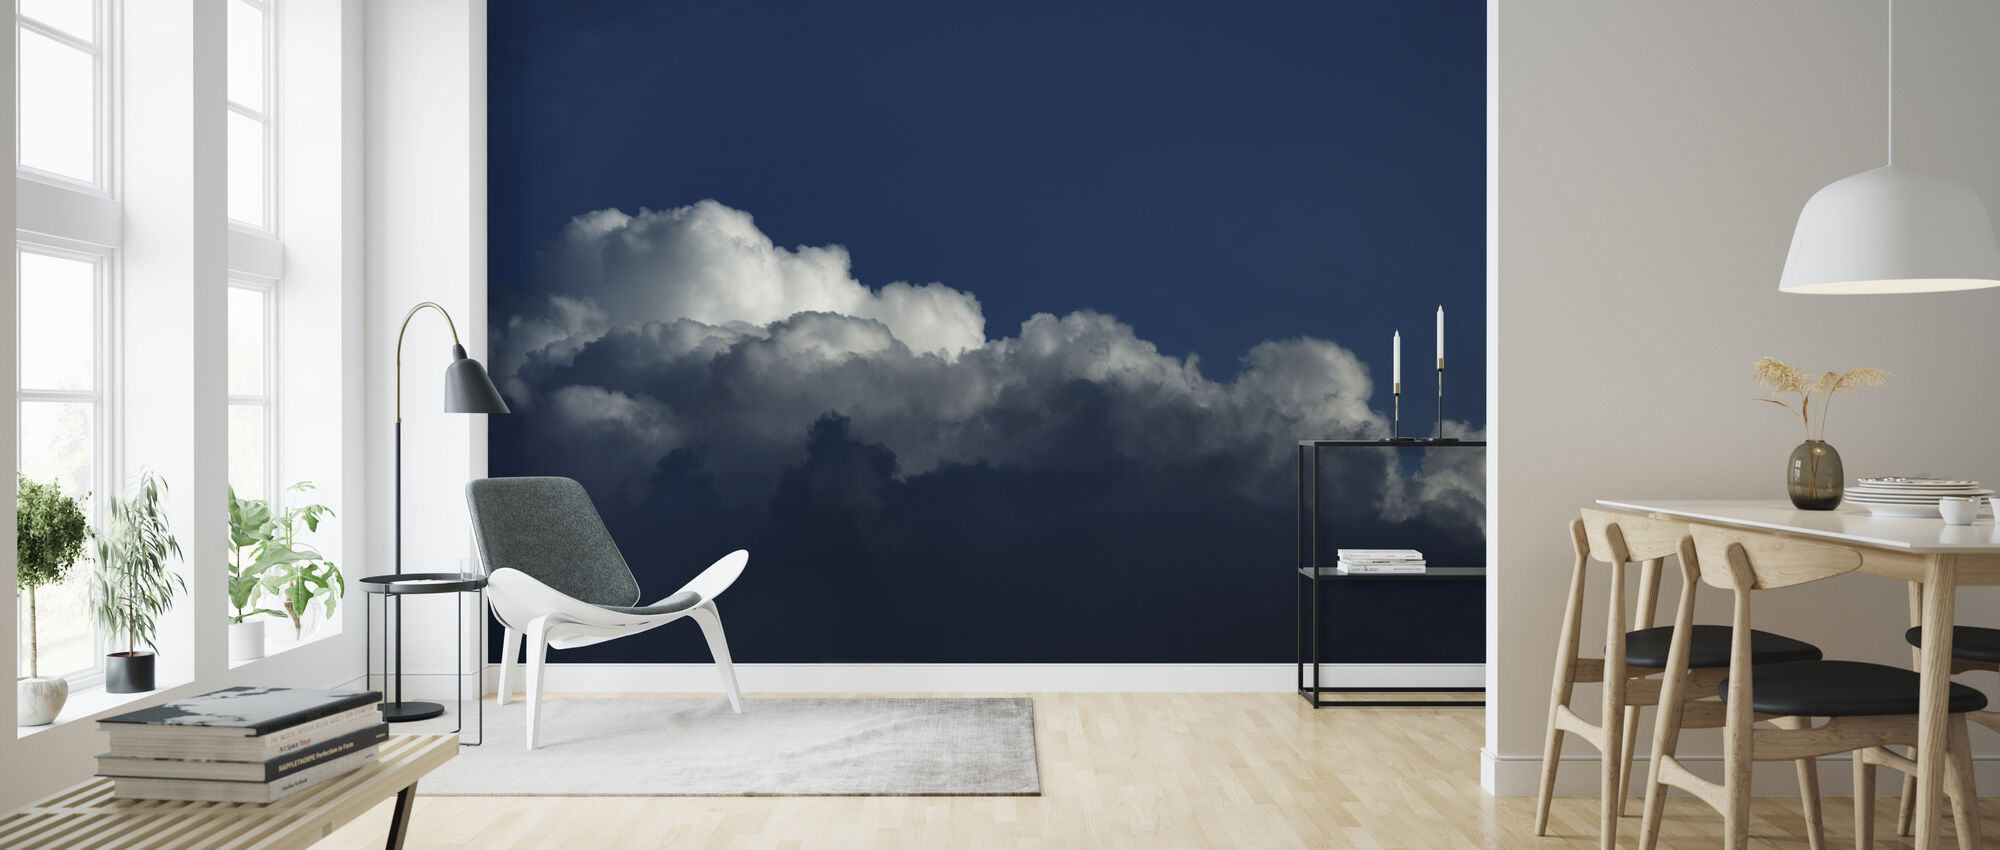 Gradient Cloud II - Wallpaper - Living Room